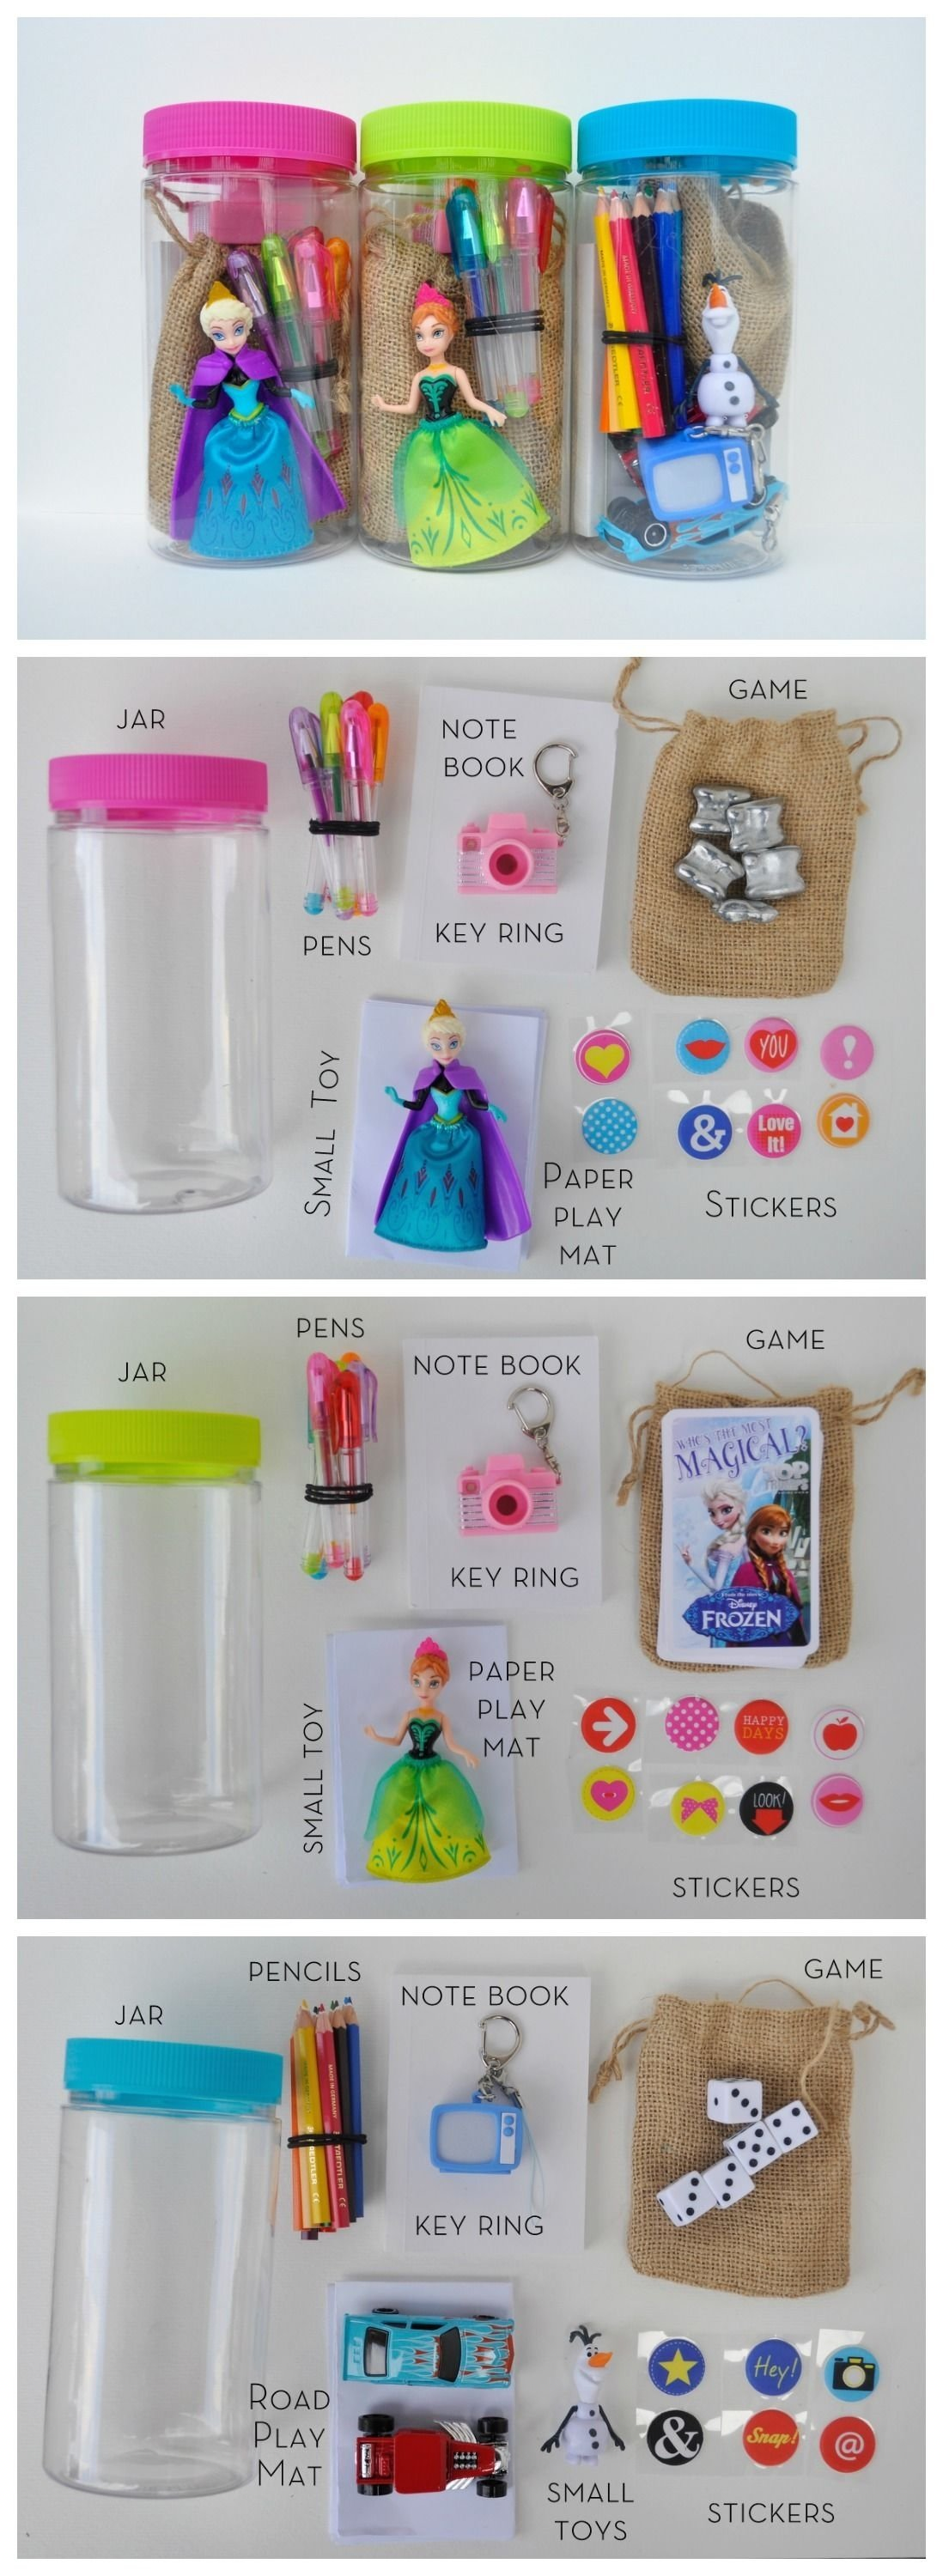 10 Wonderful Birthday Gift Ideas For Kids 20 thoughtful birthday gifts in a jar for kids plastic eggs jar 2020